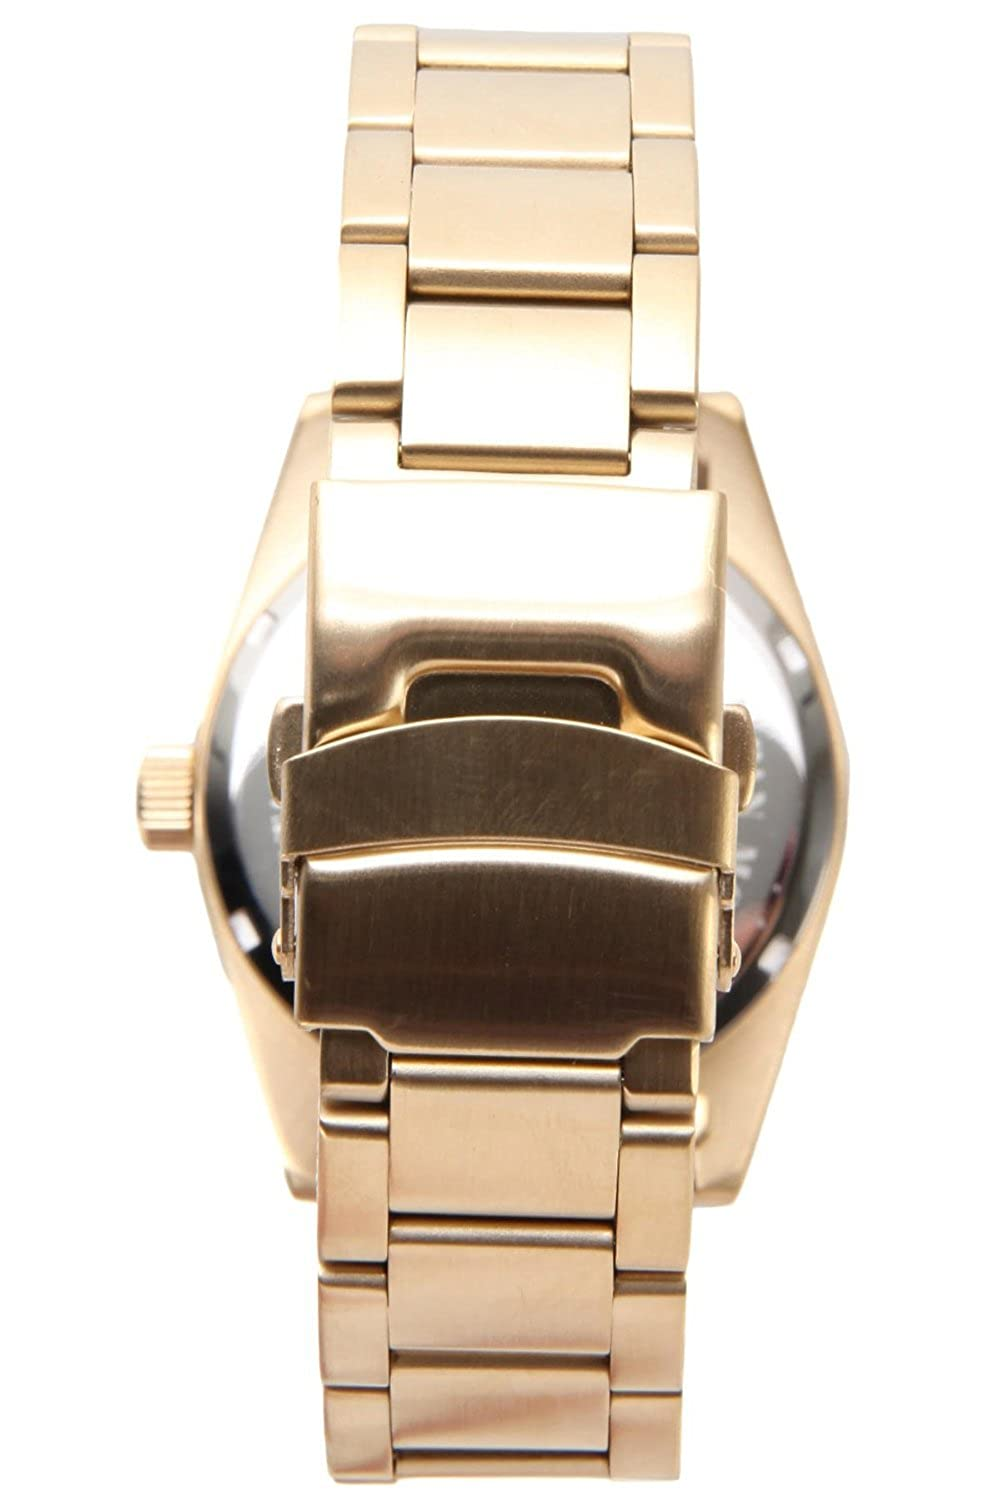 Amazon.com: Neff Baller Mens Fitted Luxury Watch - Gold / One Size Fits All: Watches